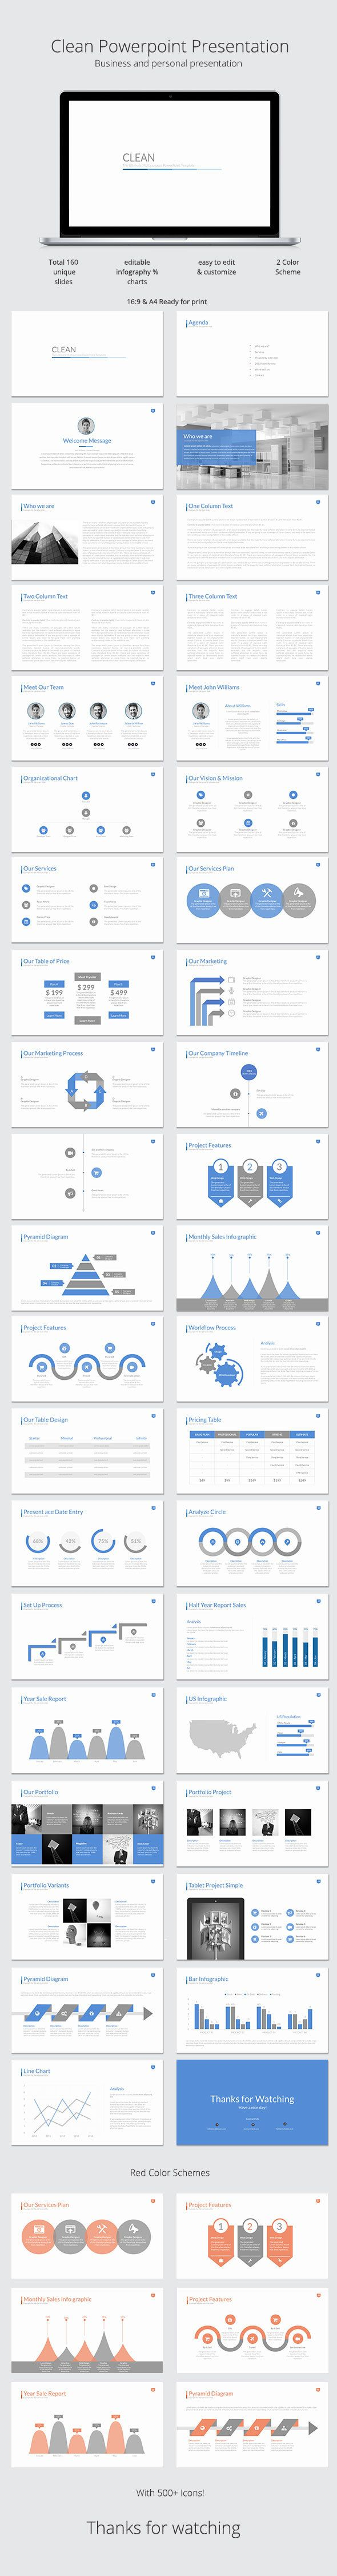 Usdgus  Unique  Ideas About Powerpoint Presentations On Pinterest With Goodlooking Clean Powerpoint Template With Beauteous Fungi Powerpoint Also Microsoft Powerpoint Wiki In Addition Ppe Training Powerpoint And Html To Powerpoint As Well As Jeopardy Powerpoint Maker Additionally Powerpoint Animation Change Text From Pinterestcom With Usdgus  Goodlooking  Ideas About Powerpoint Presentations On Pinterest With Beauteous Clean Powerpoint Template And Unique Fungi Powerpoint Also Microsoft Powerpoint Wiki In Addition Ppe Training Powerpoint From Pinterestcom